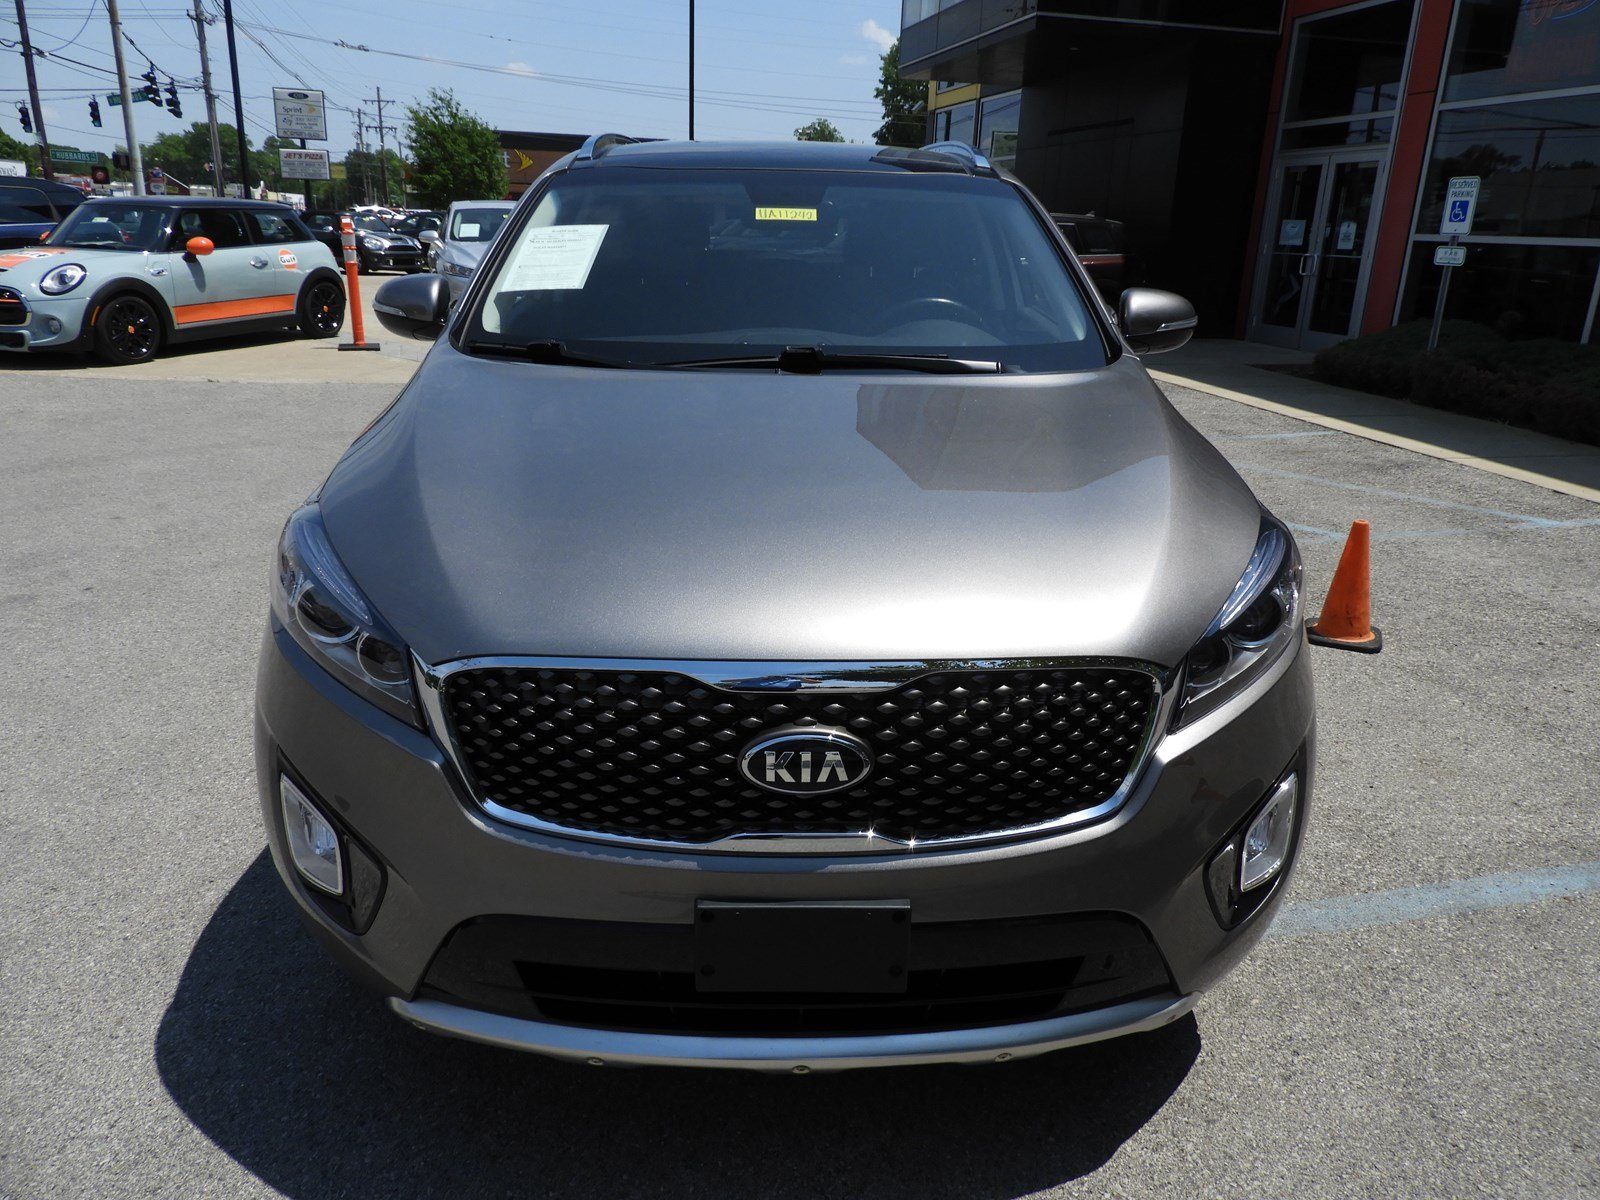 bronx rye hybrid dealer westchester west chester county optima york new ny kia